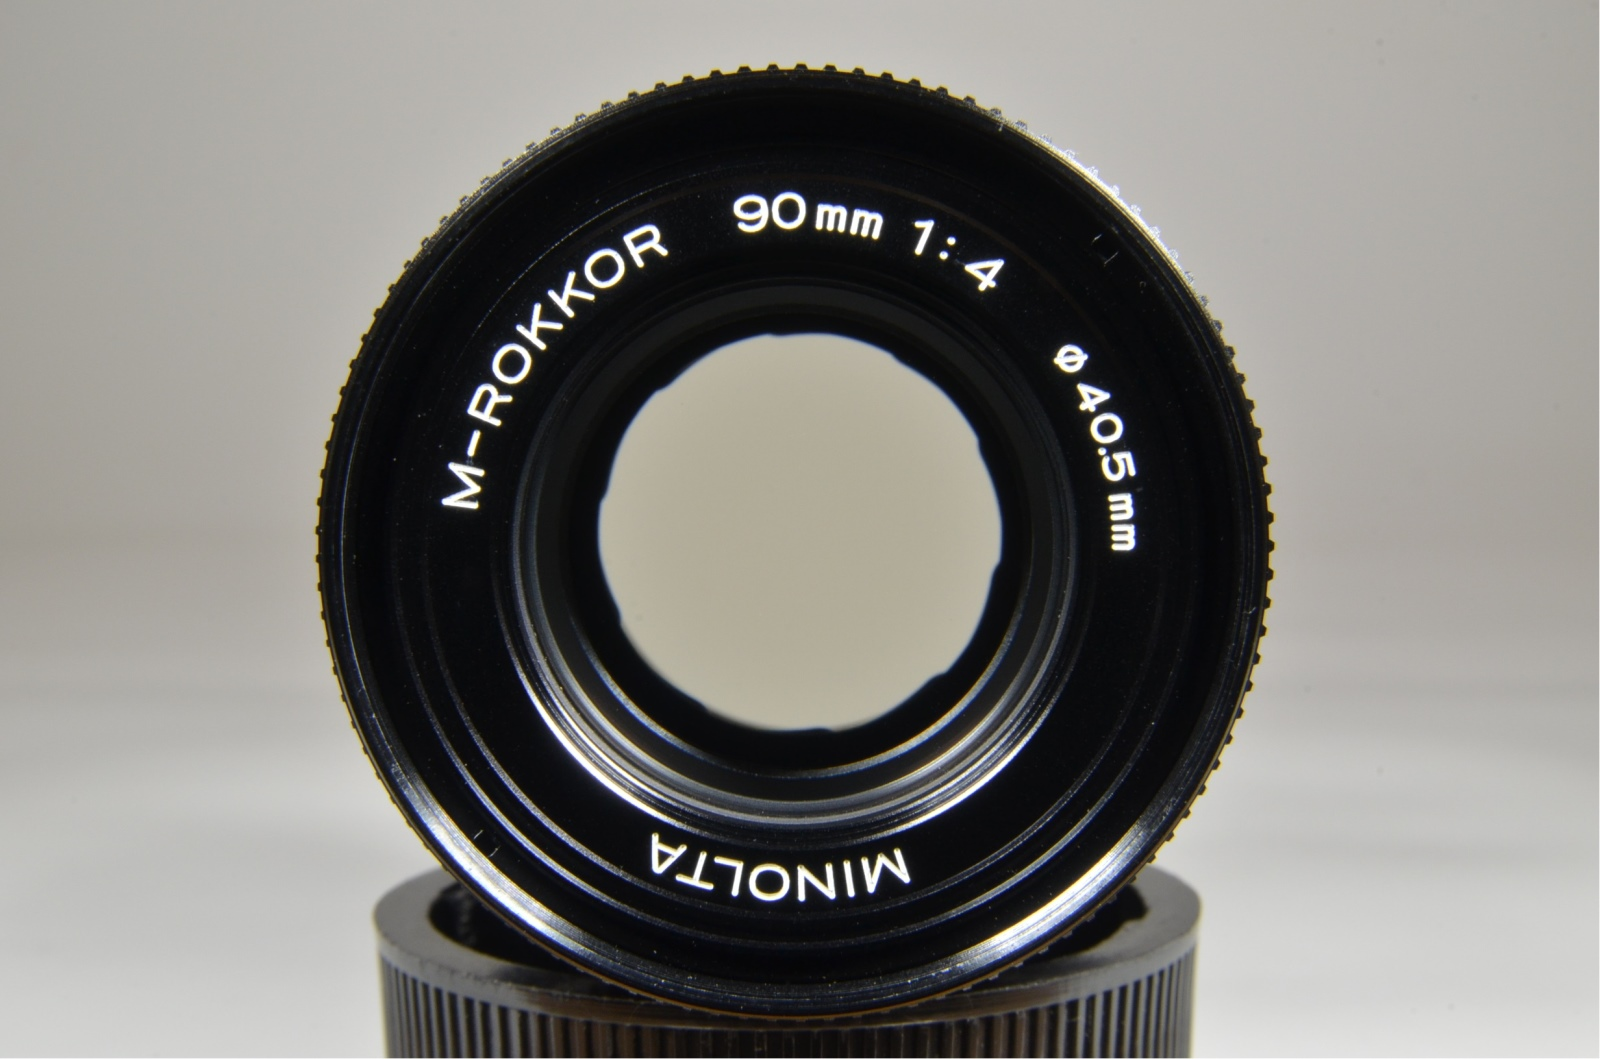 minolta cle film camera, m-rokkor 40mm, 28mm, 90mm, flash and grip